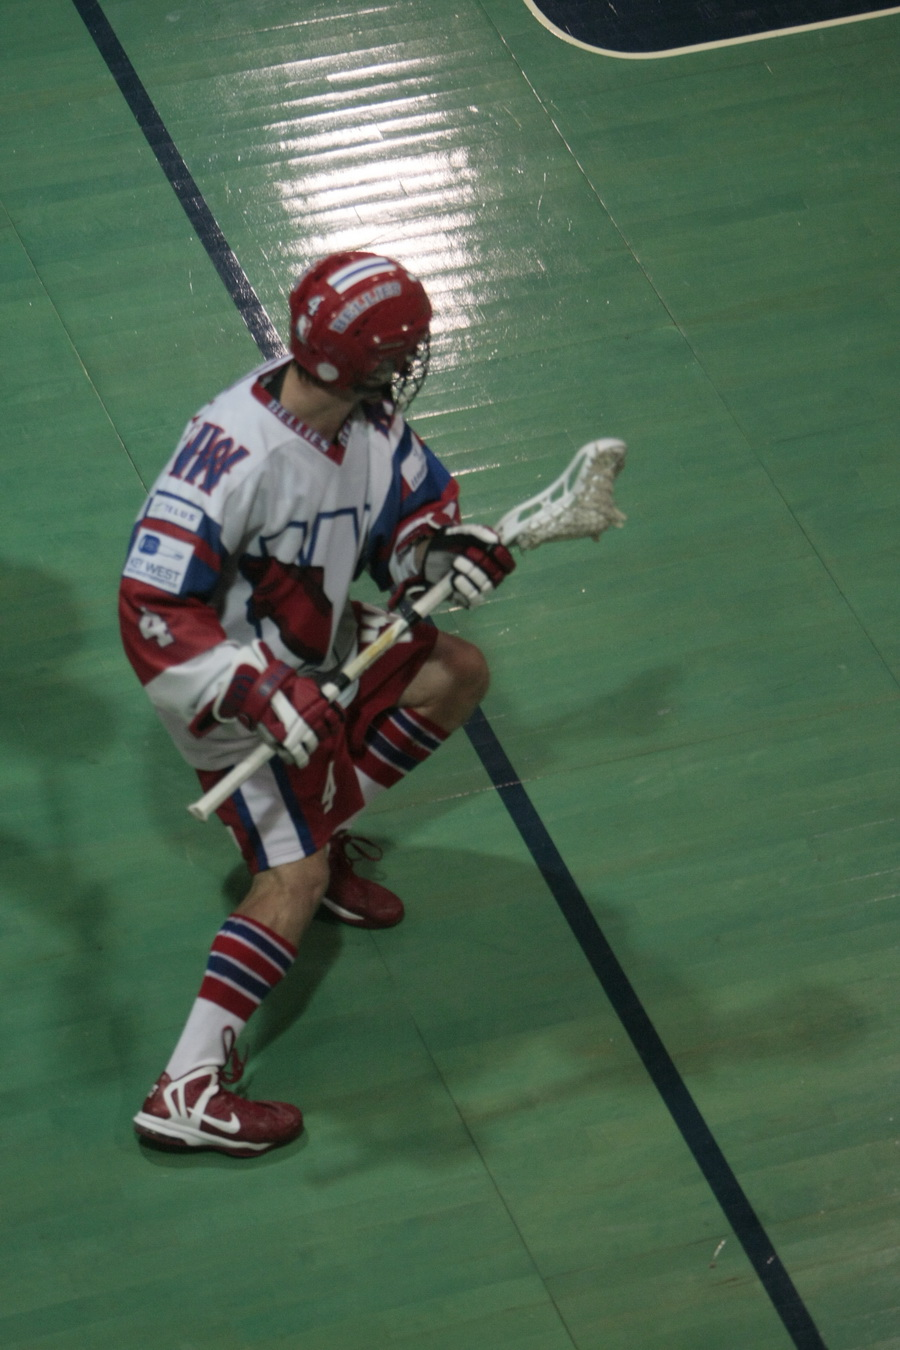 Chet Koneczny pro lacrosse player performing a roll dodge